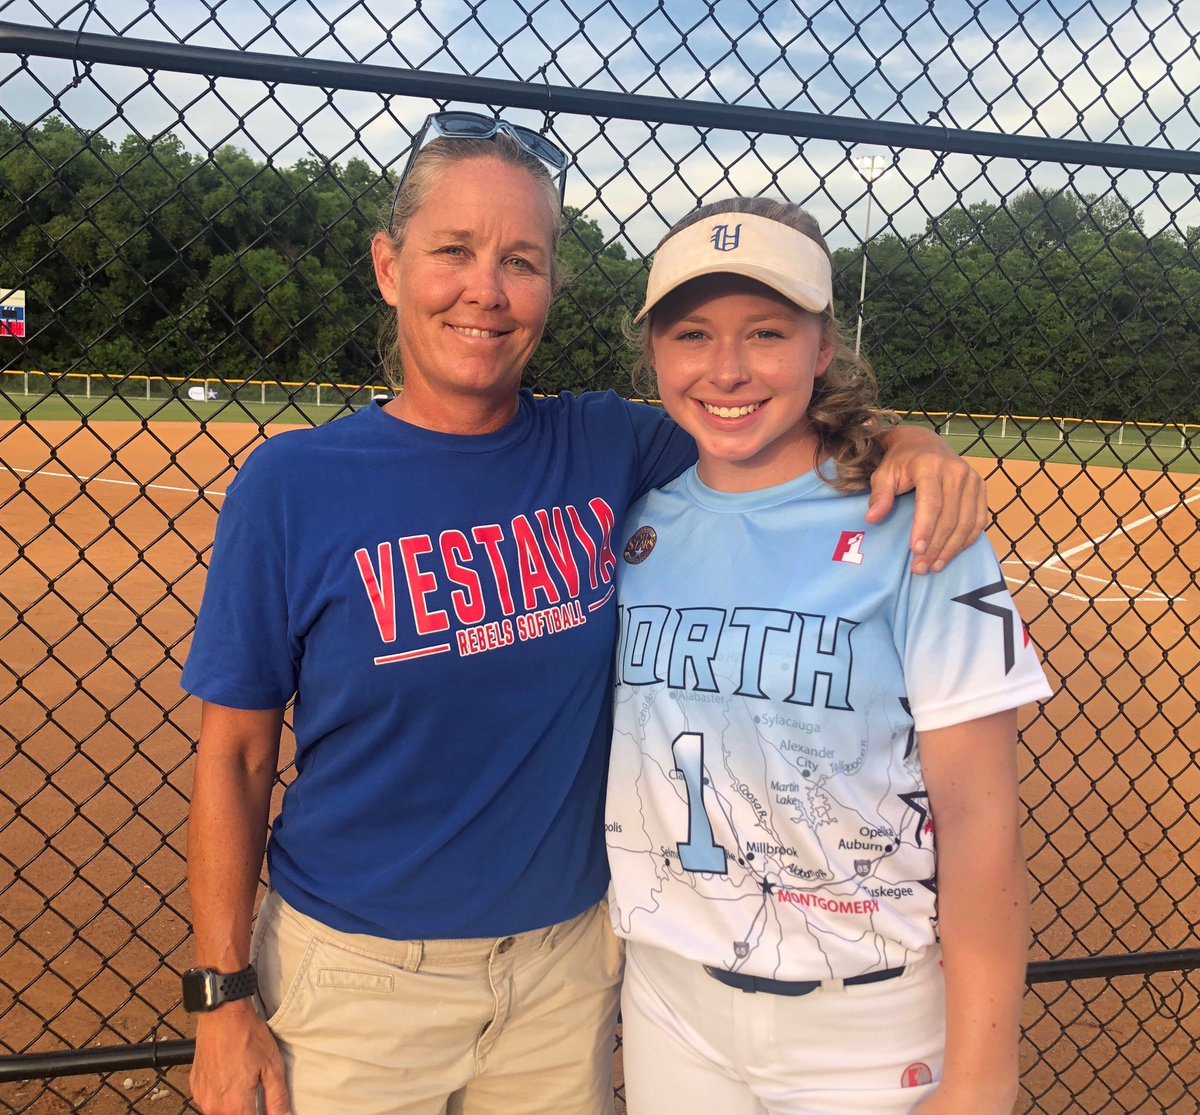 So proud of Mary Claire Wilson representing Vestavia at the North-South All Star game tonight in Montgomery. Go get 'me MC!! https://t.co/v90mkyq2C3